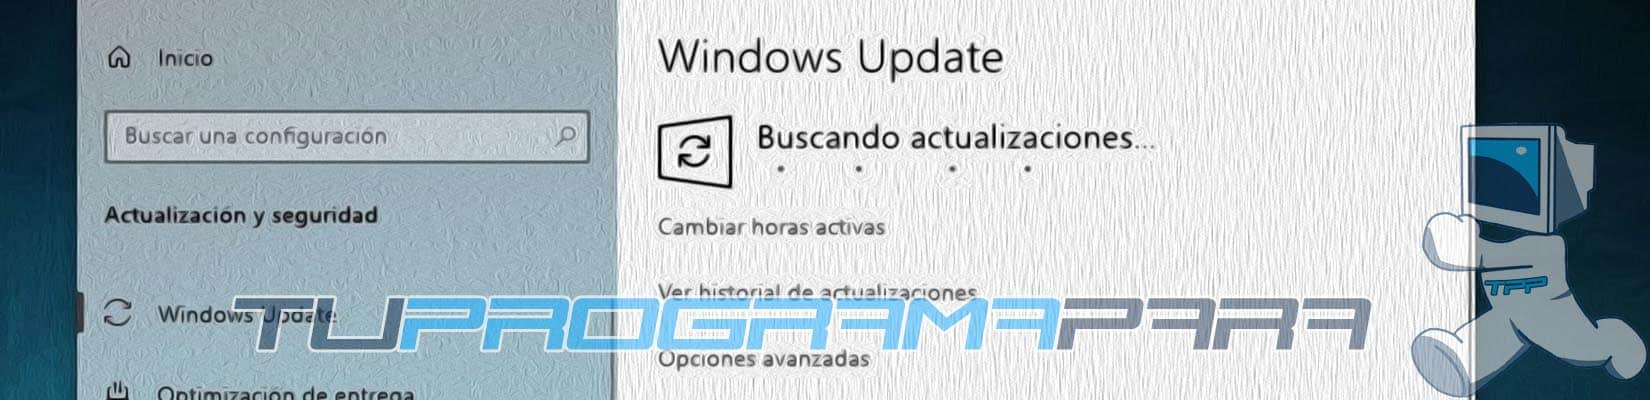 quitar actualizaciones automaticas windows 10